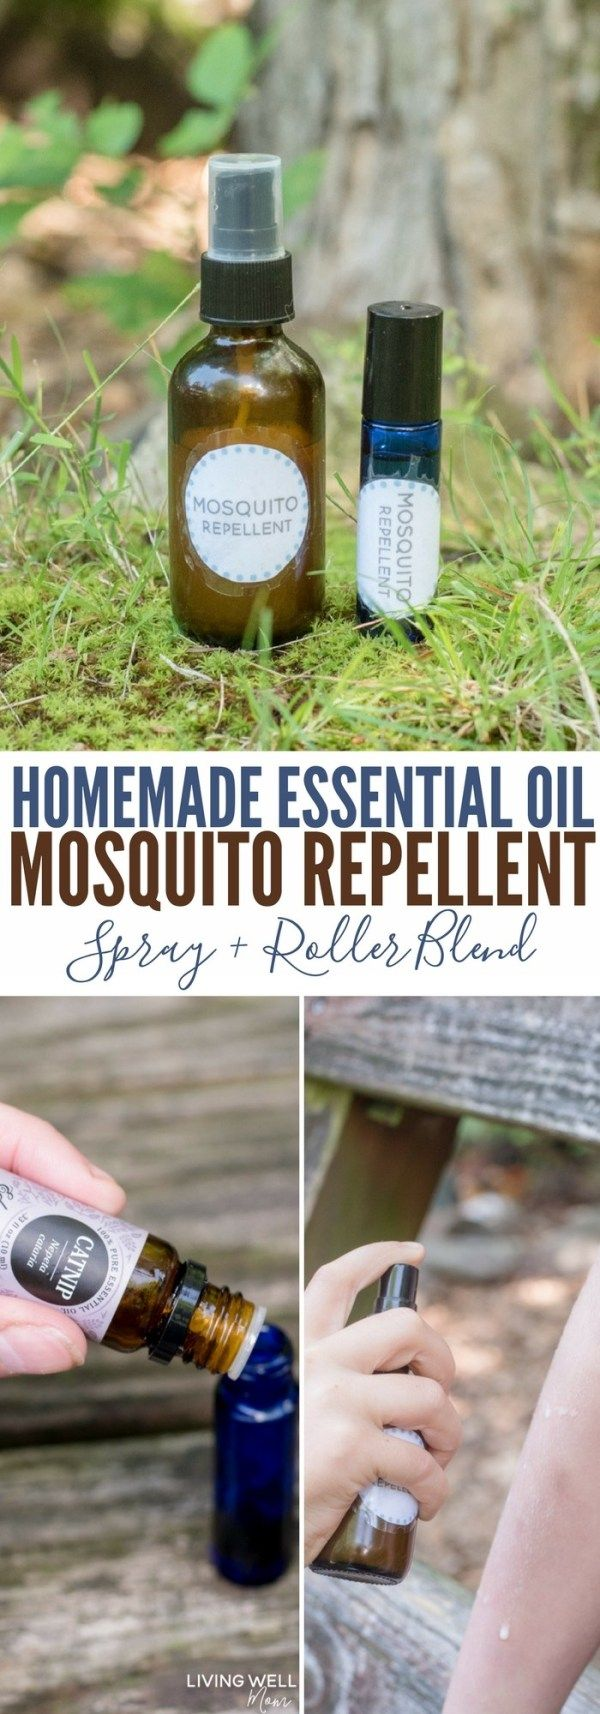 Homemade Mosquito Repellent Spray with Essential Oils